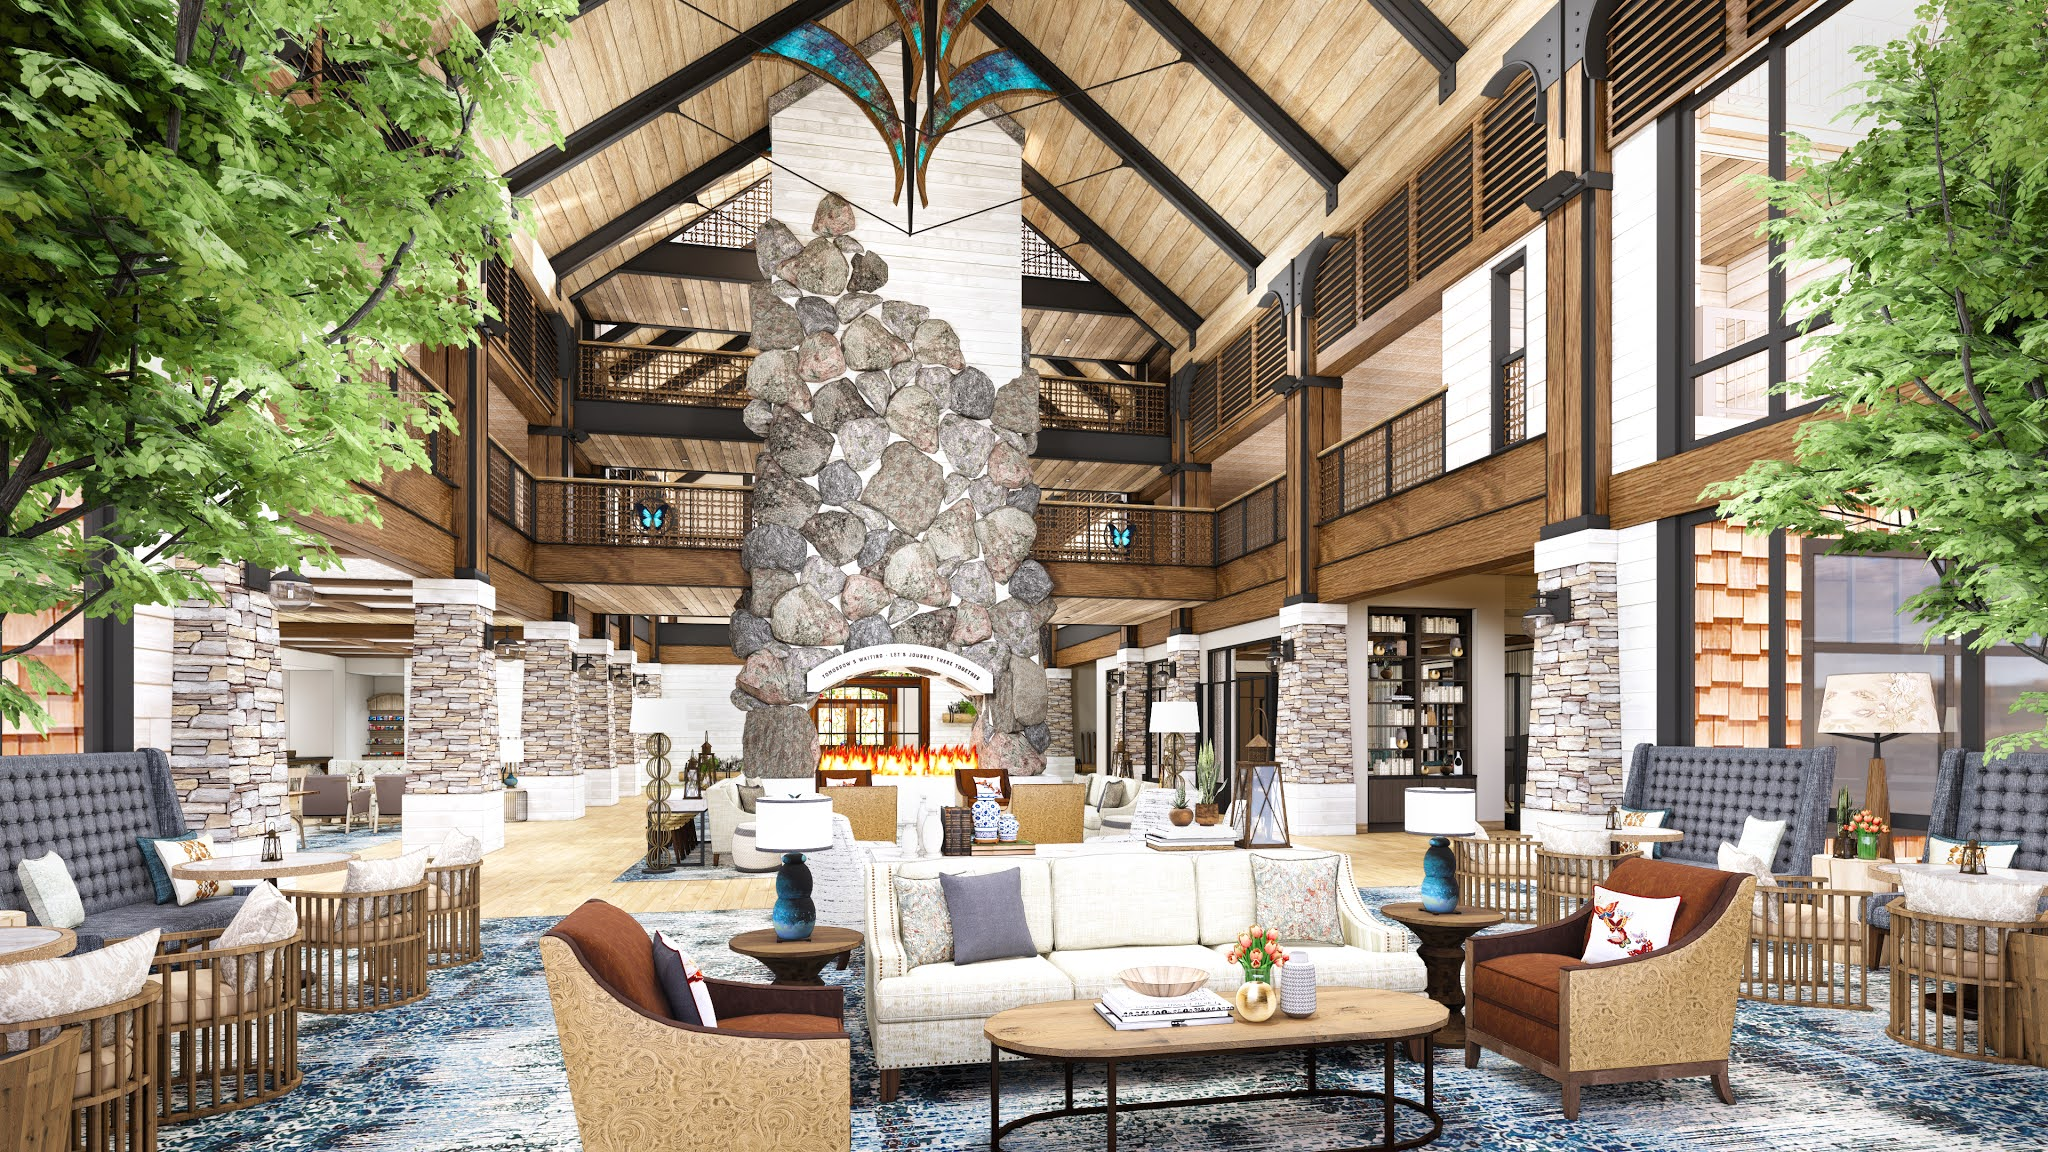 HeartSong Lodge & Resort- Fireplace- Dollywood's HeartSong Lodge & Resort welcomes the outdoors inside with high ceilings, exposed beams and natural layered textures. These lovely touches are inspired by the beauty of the Smokies.